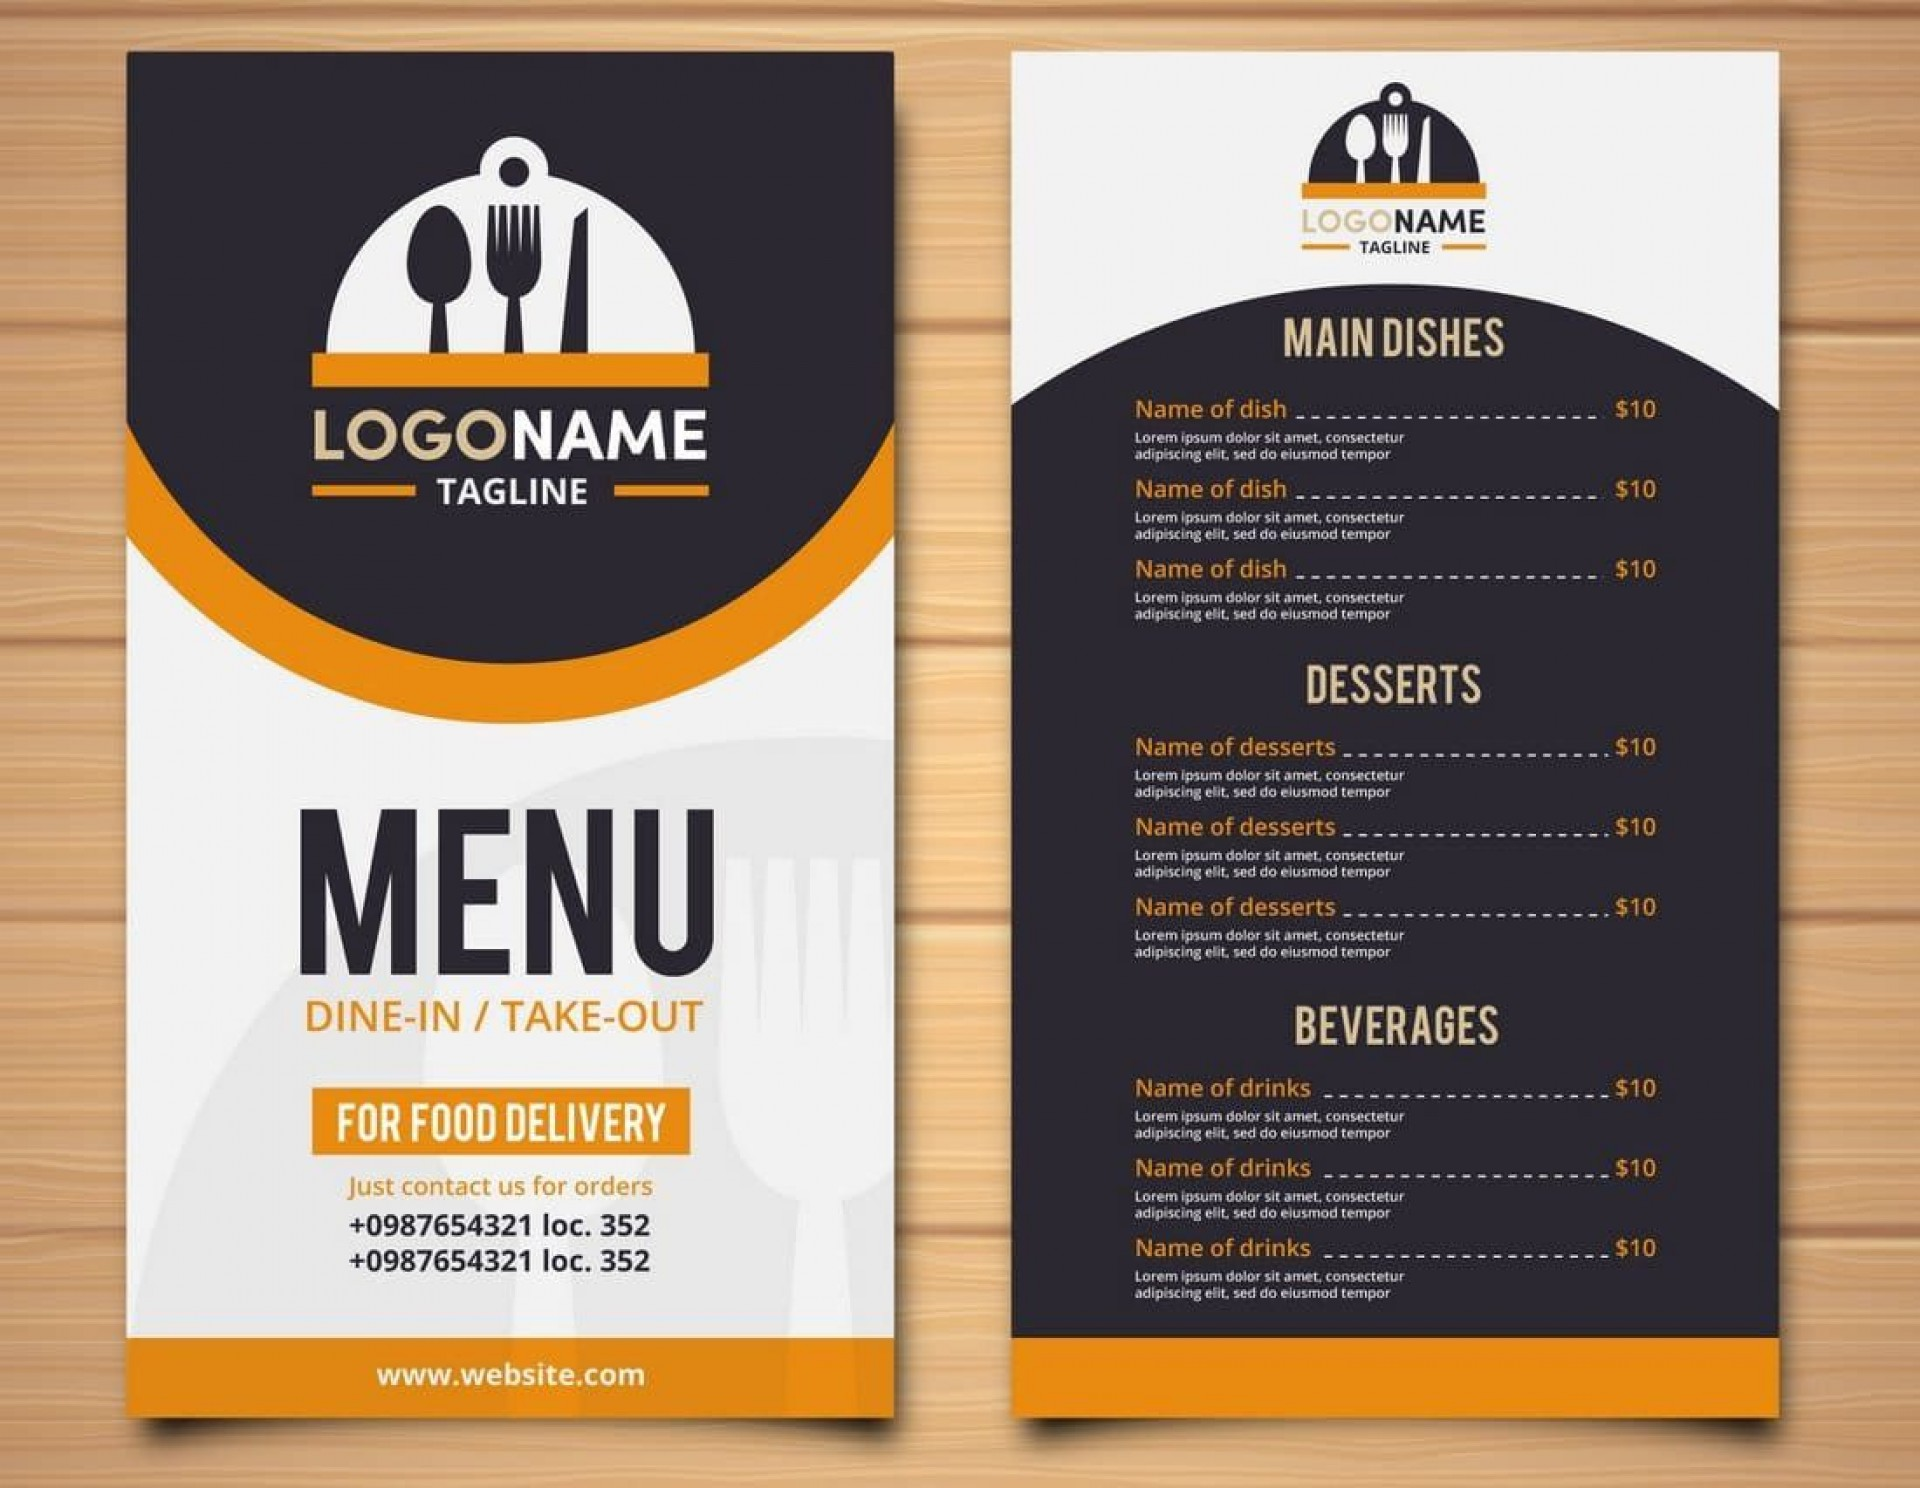 003 Remarkable Take Out Menu Template High Definition  Tri Fold Free Word Restaurant Away1920